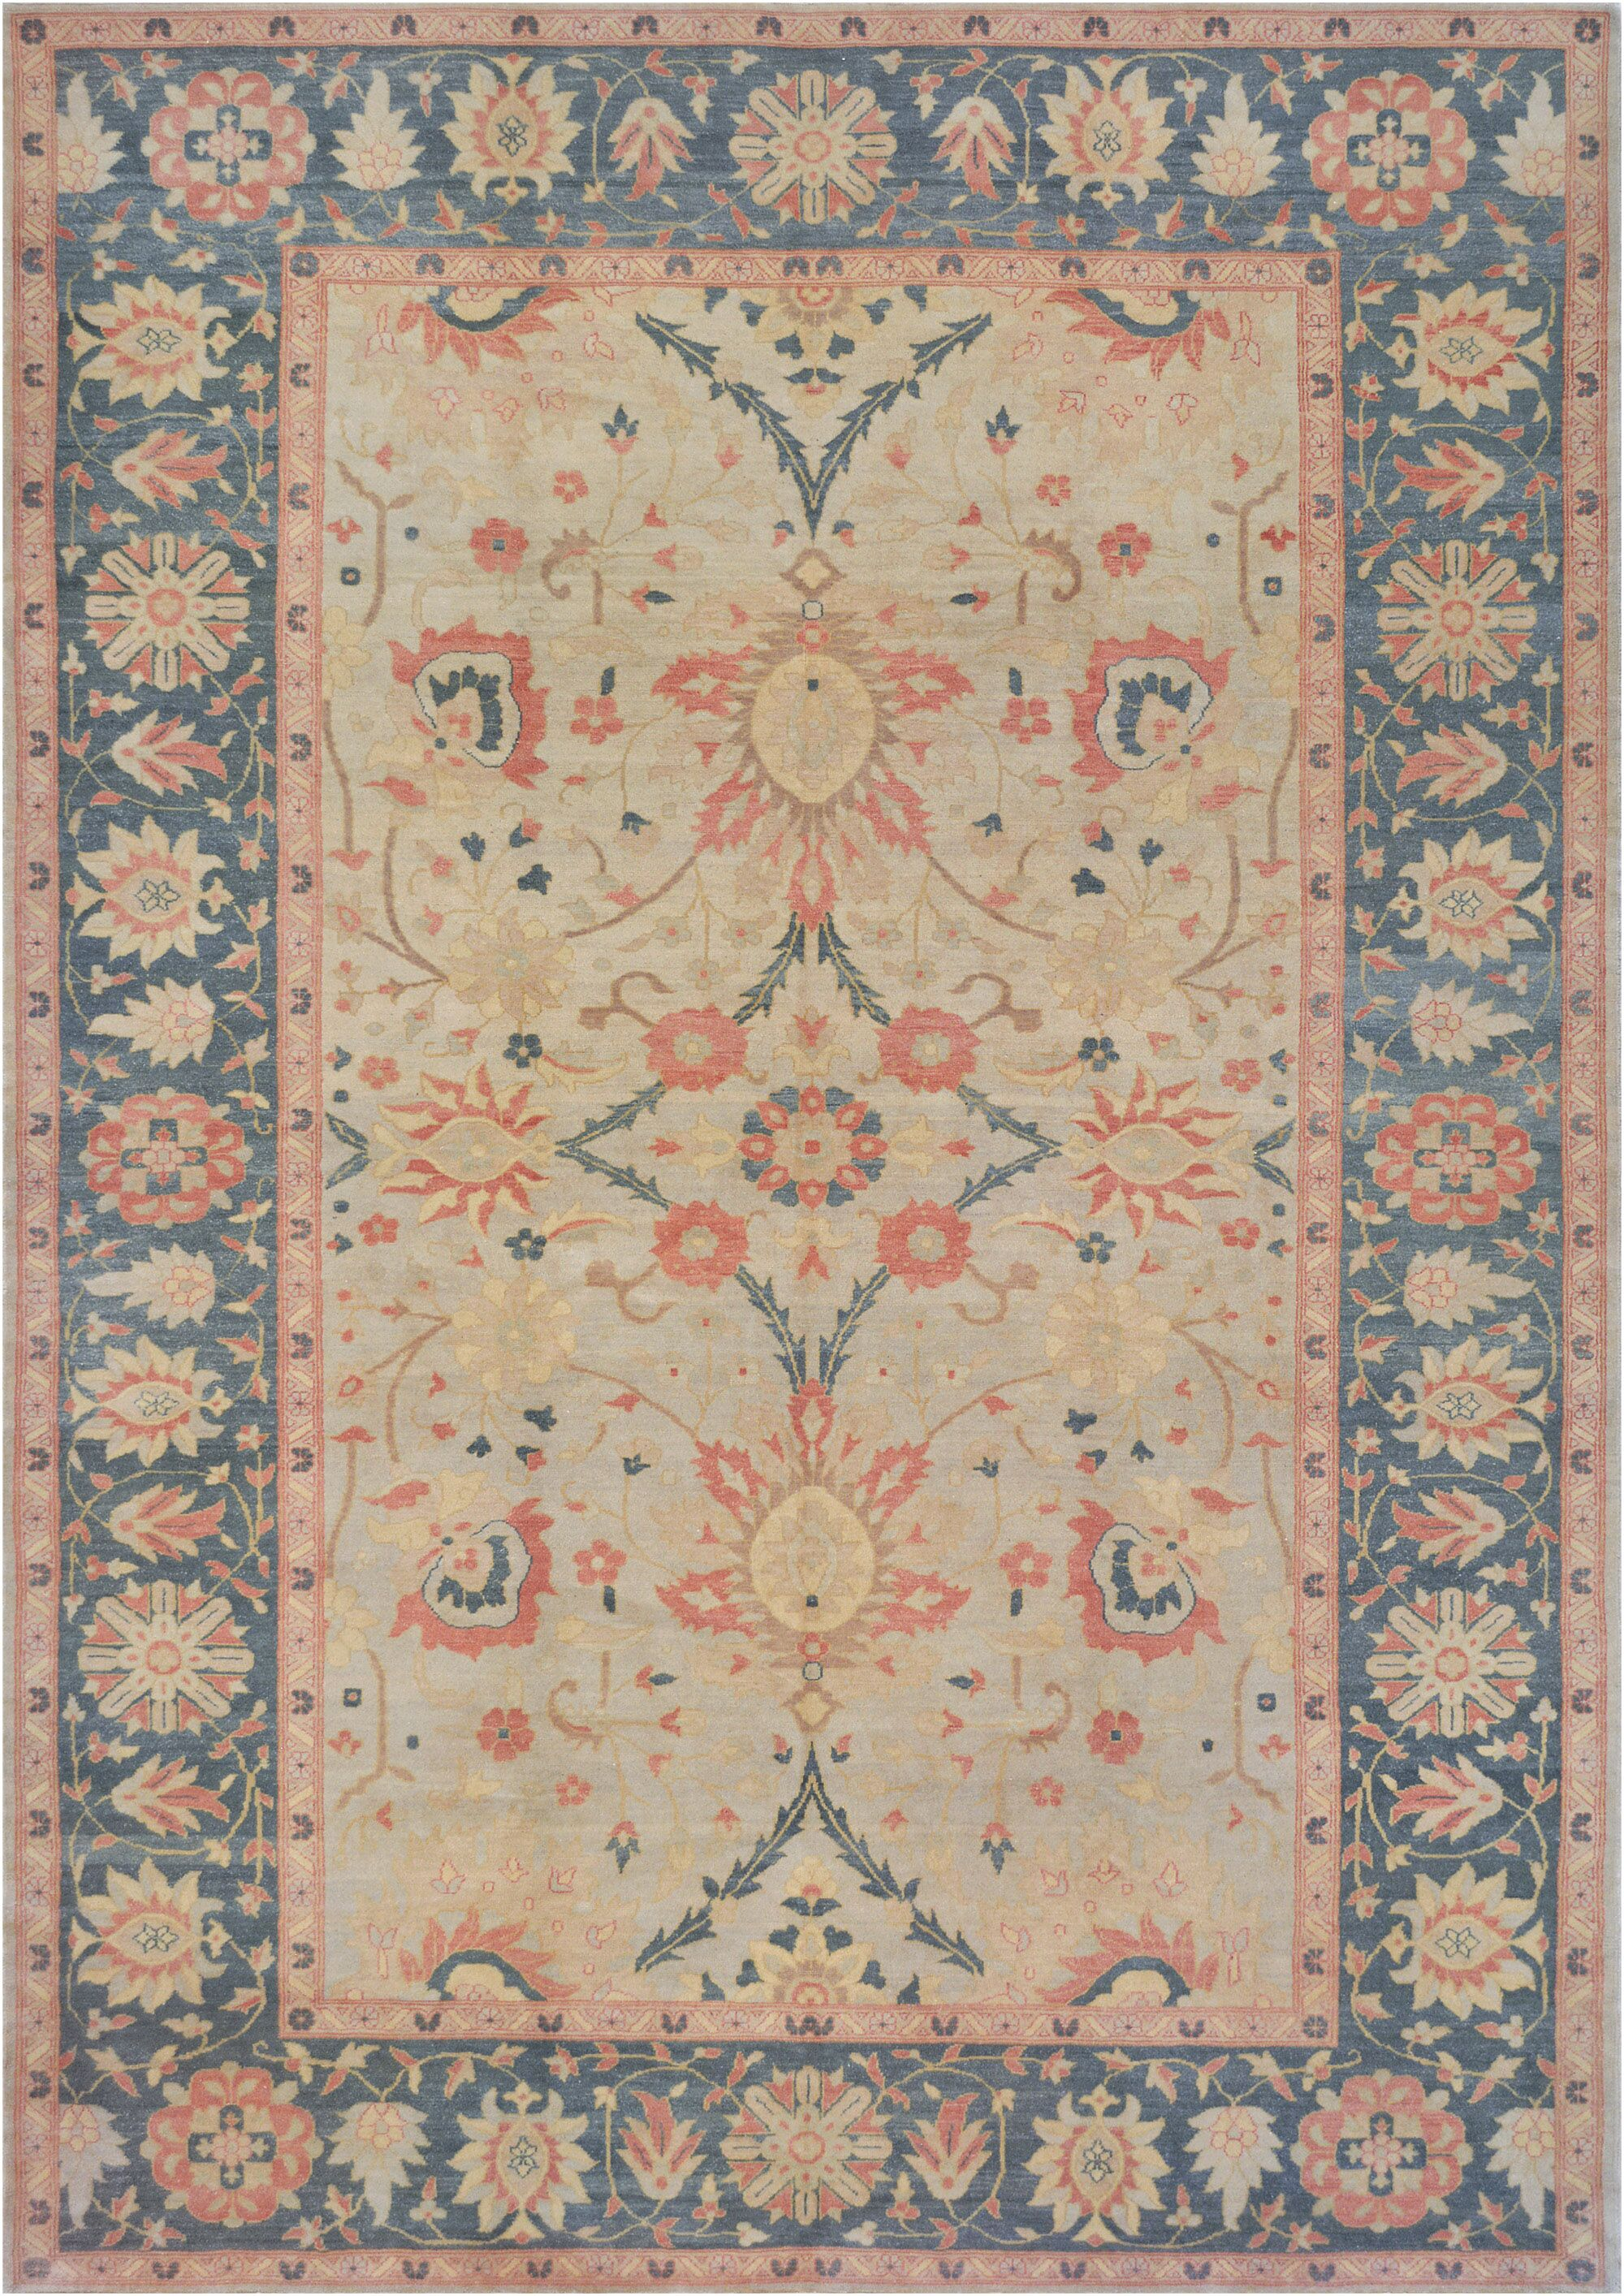 One-of-a-Kind Agra Hand-Knotted Wool Beige Indoor Area Rug